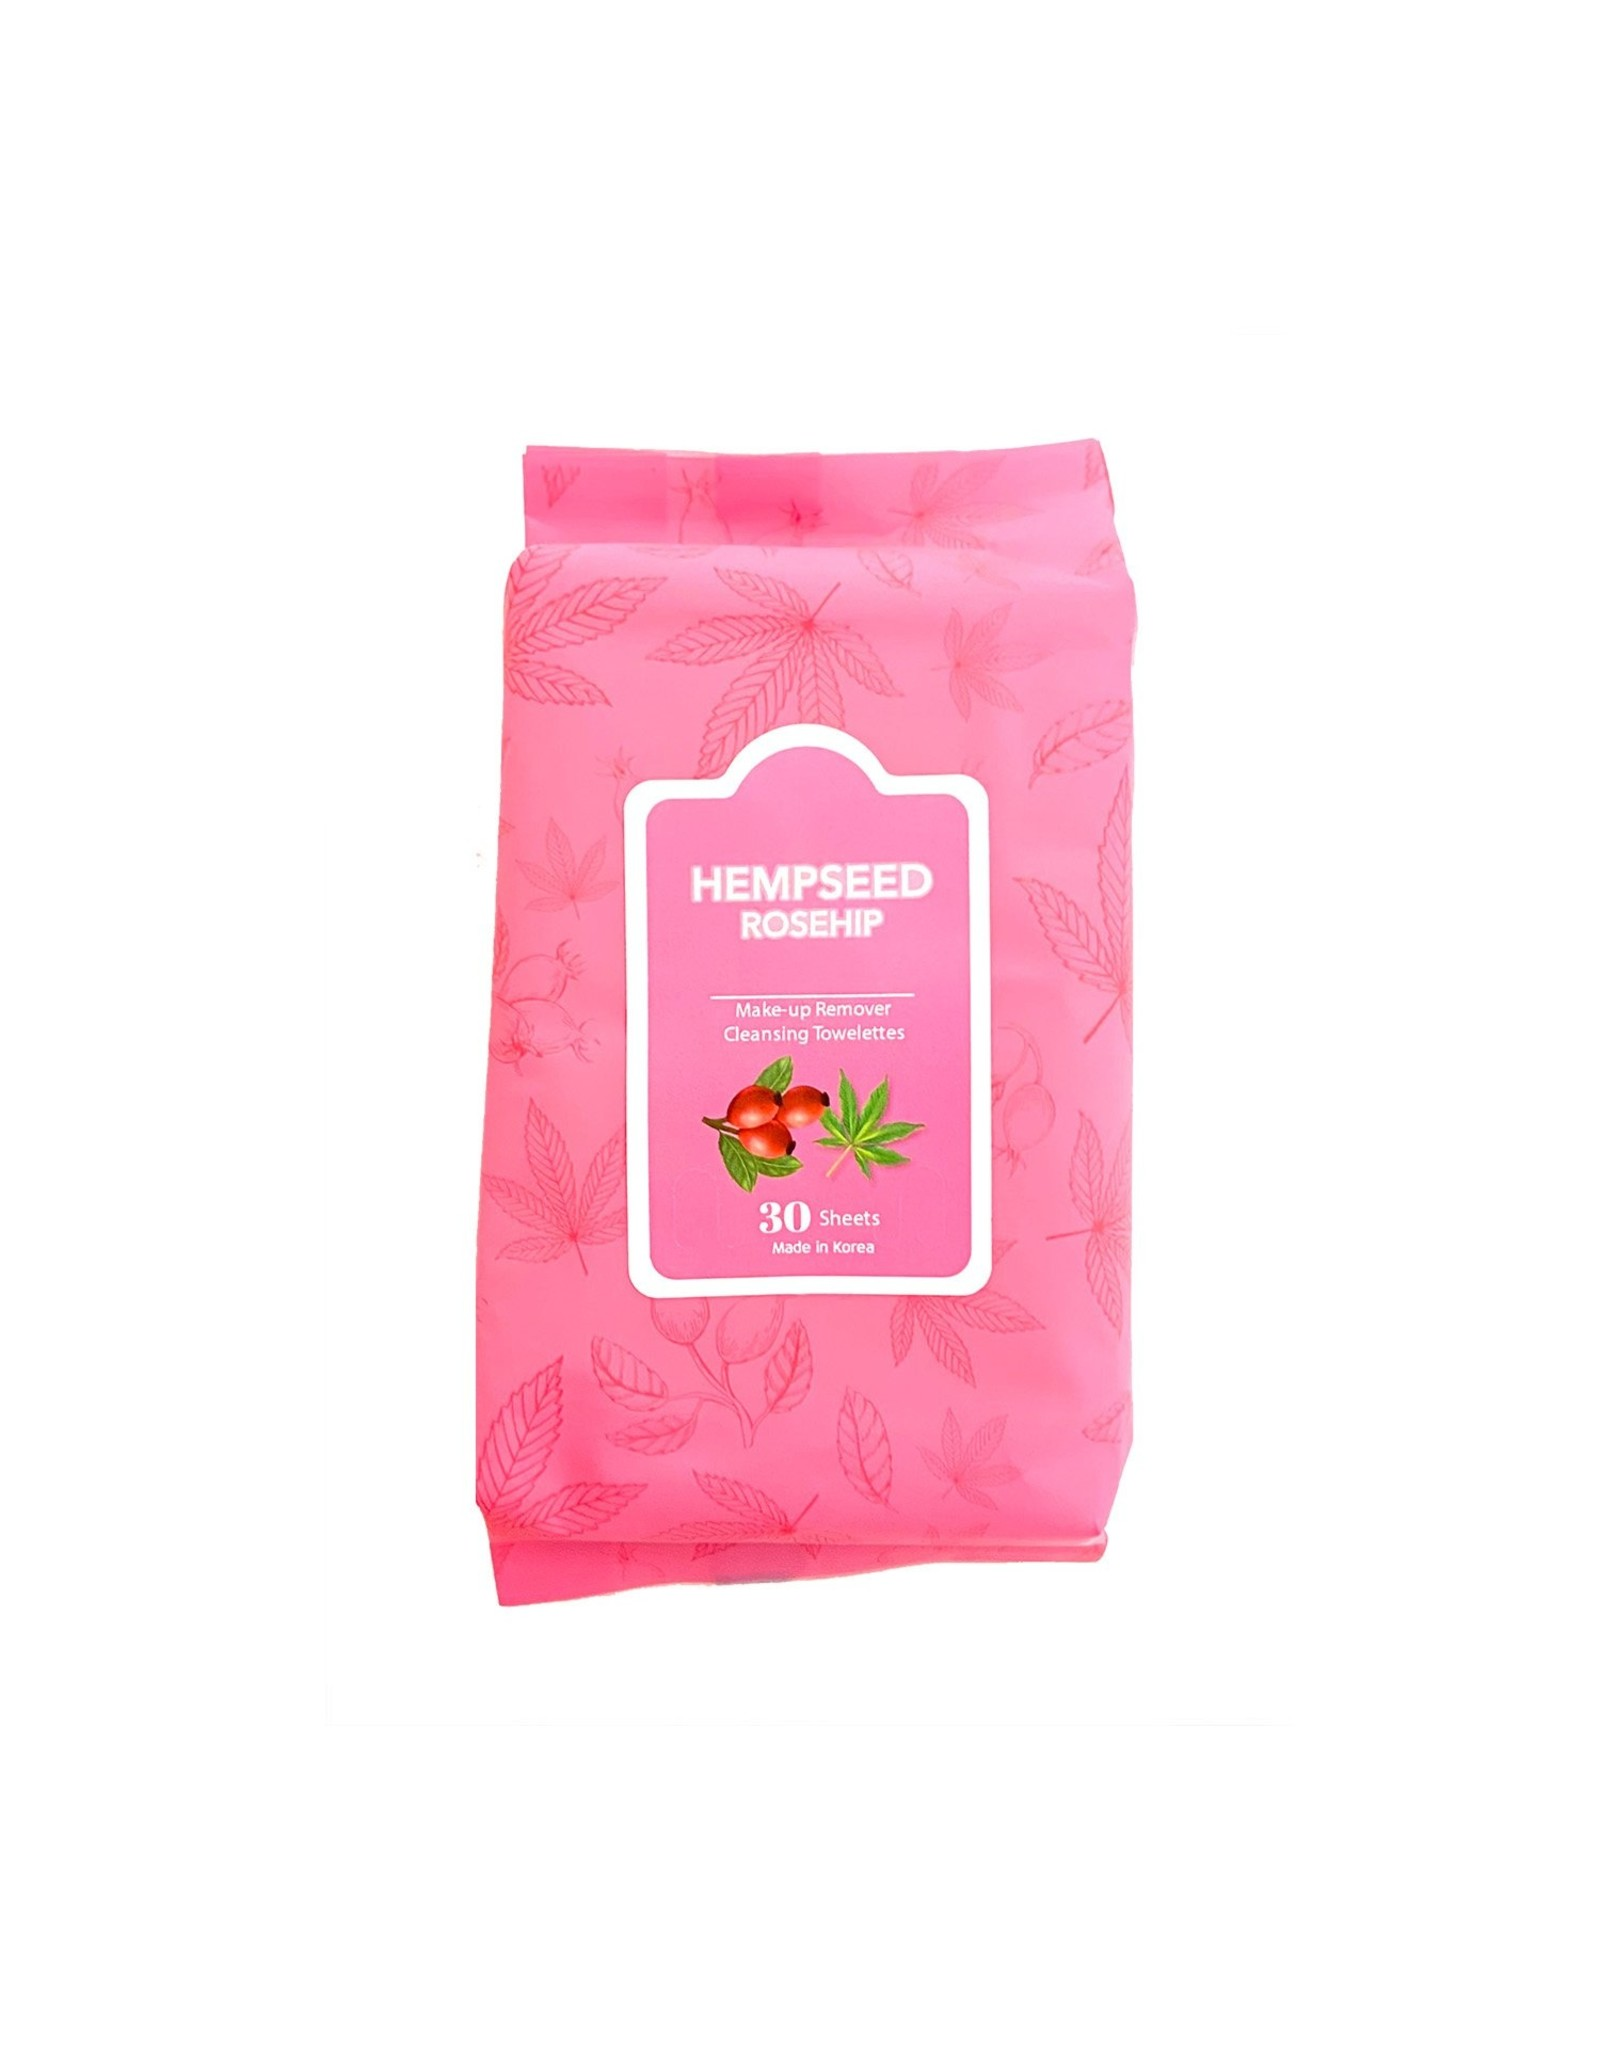 HEMPSEED ROSEHIP MAKE UP REMOVER OIL CLEANSING TOWELETTES 30 SHEETS